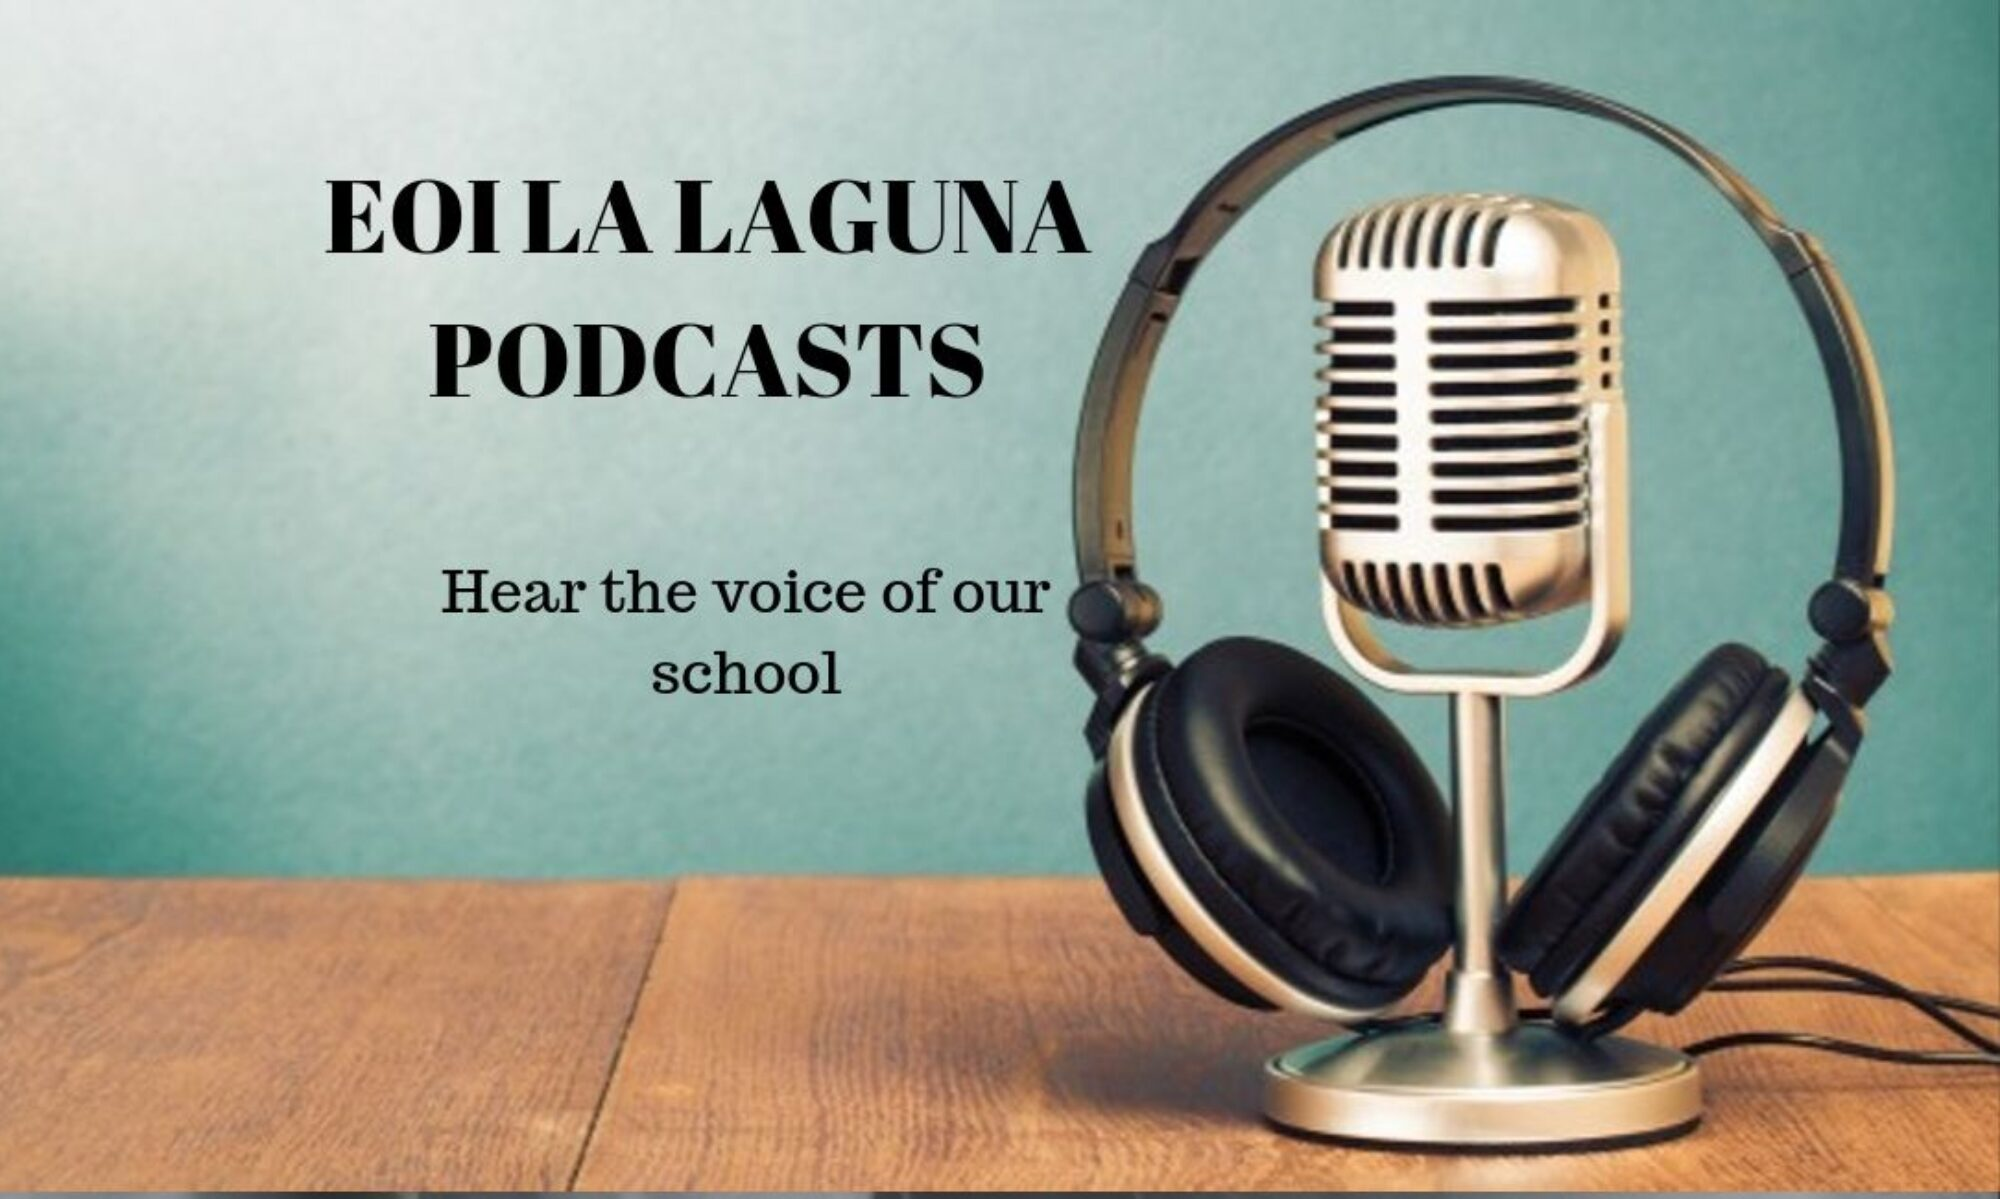 EOI LL Podcasts